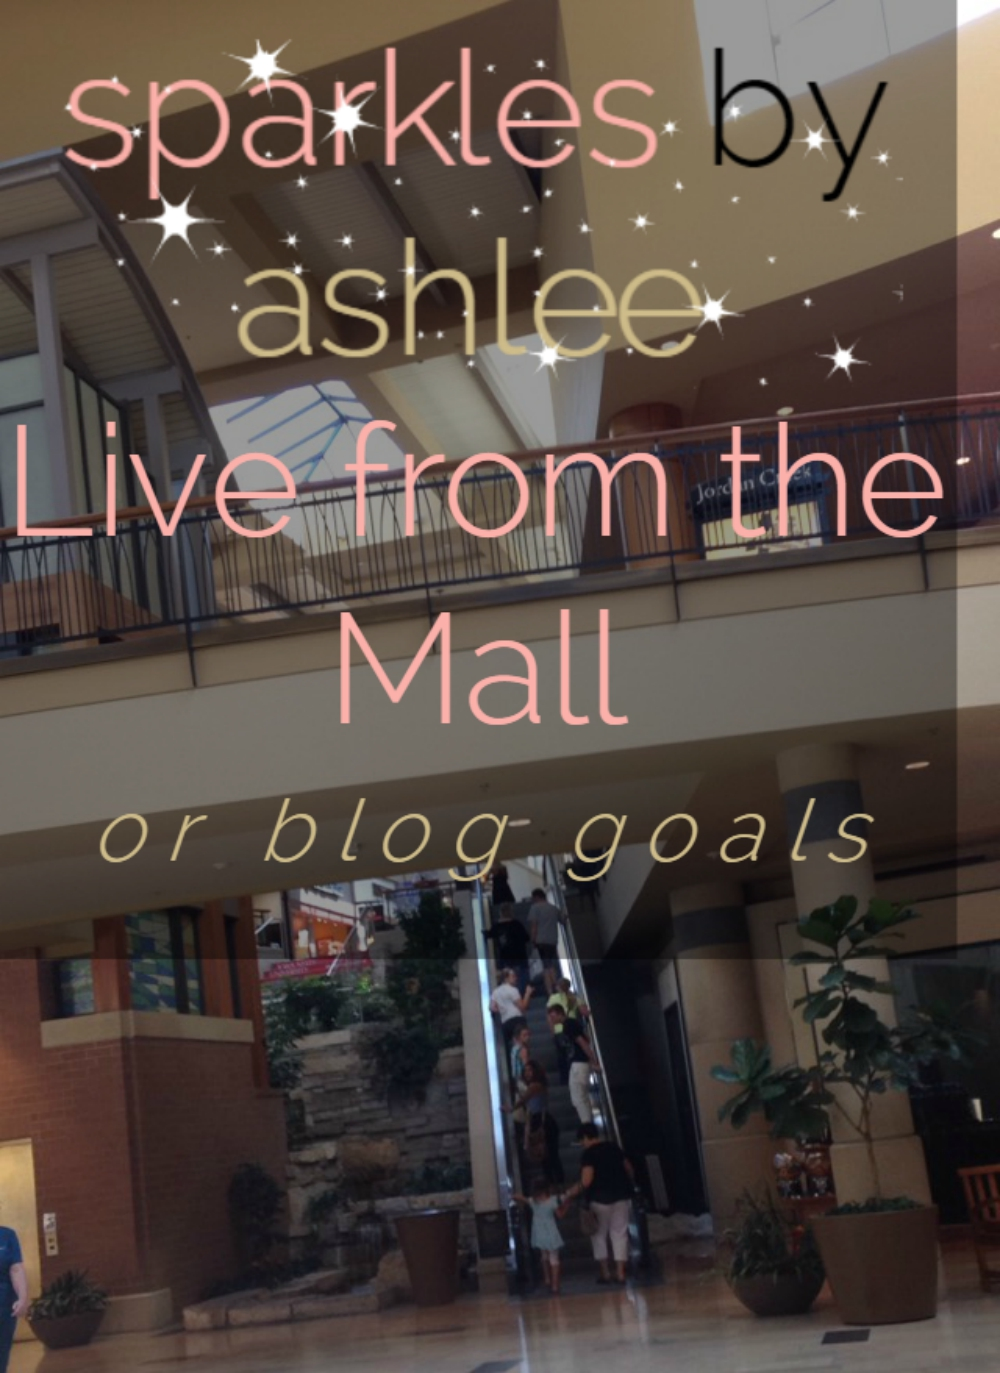 Live-from-the-Mall-or-Blog-Goals-Sparkles-by-Ashlee.jpg